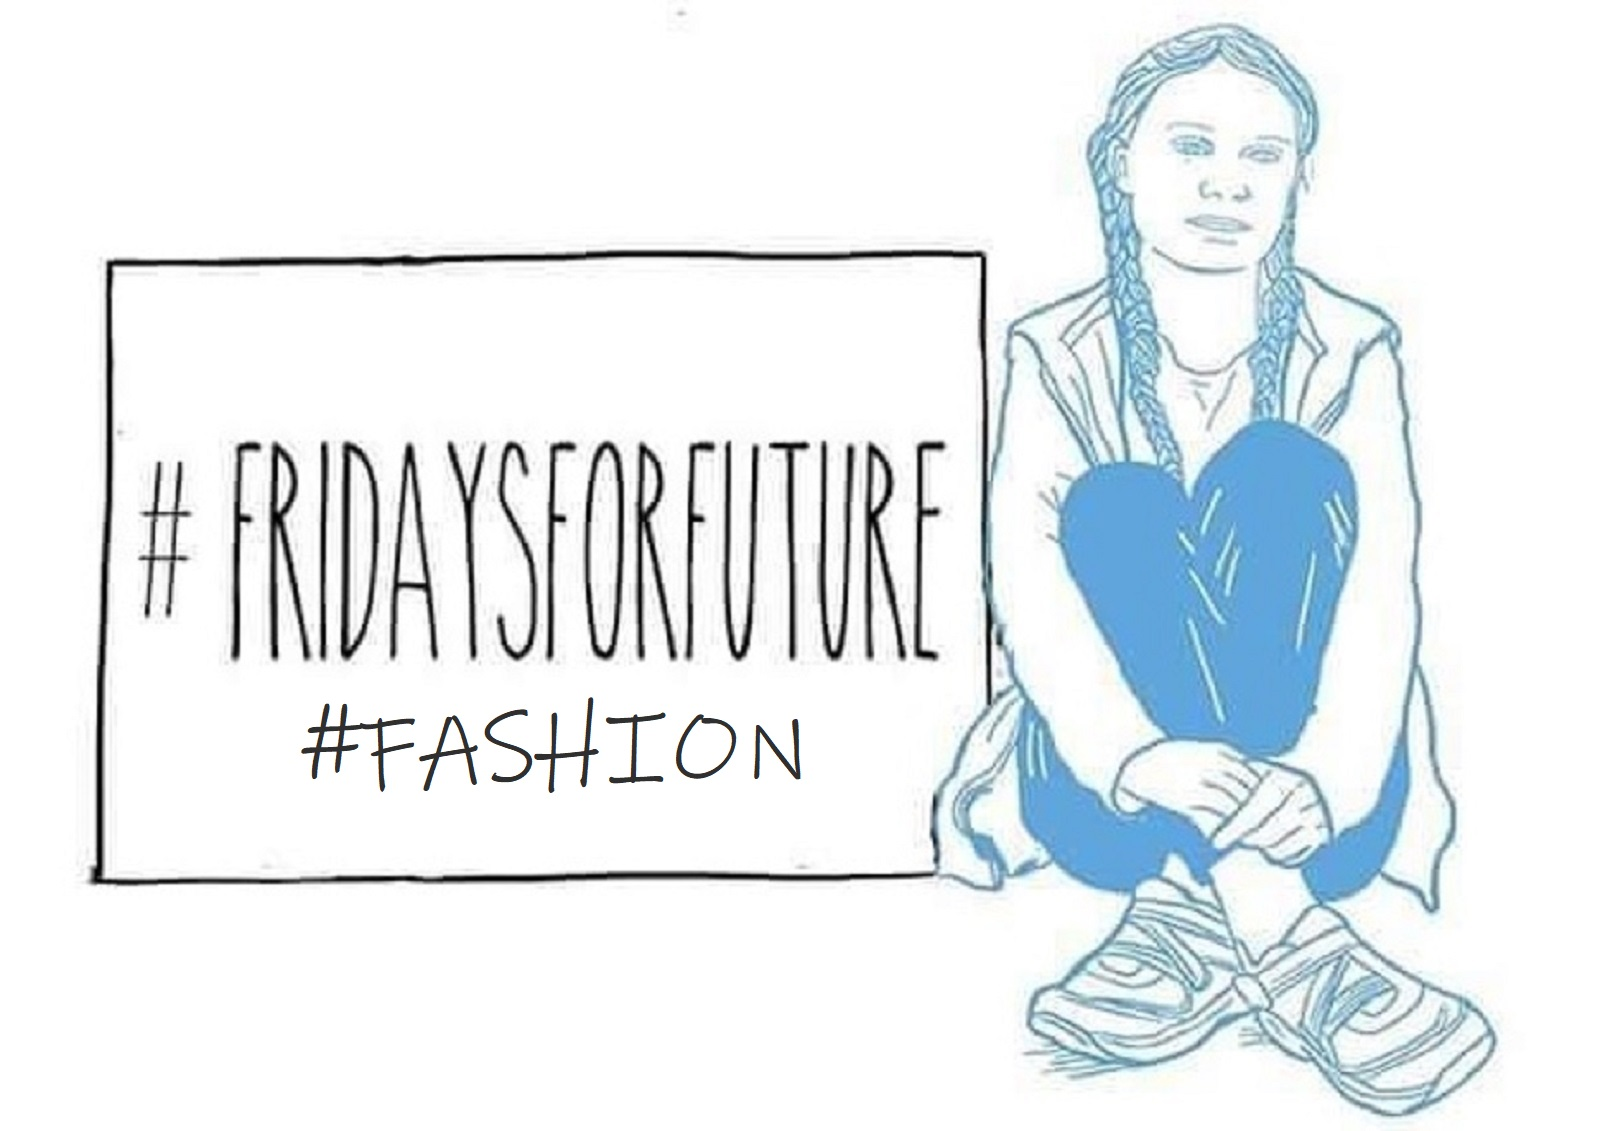 Greta Thunberg to trademark her name and Fridays for Future